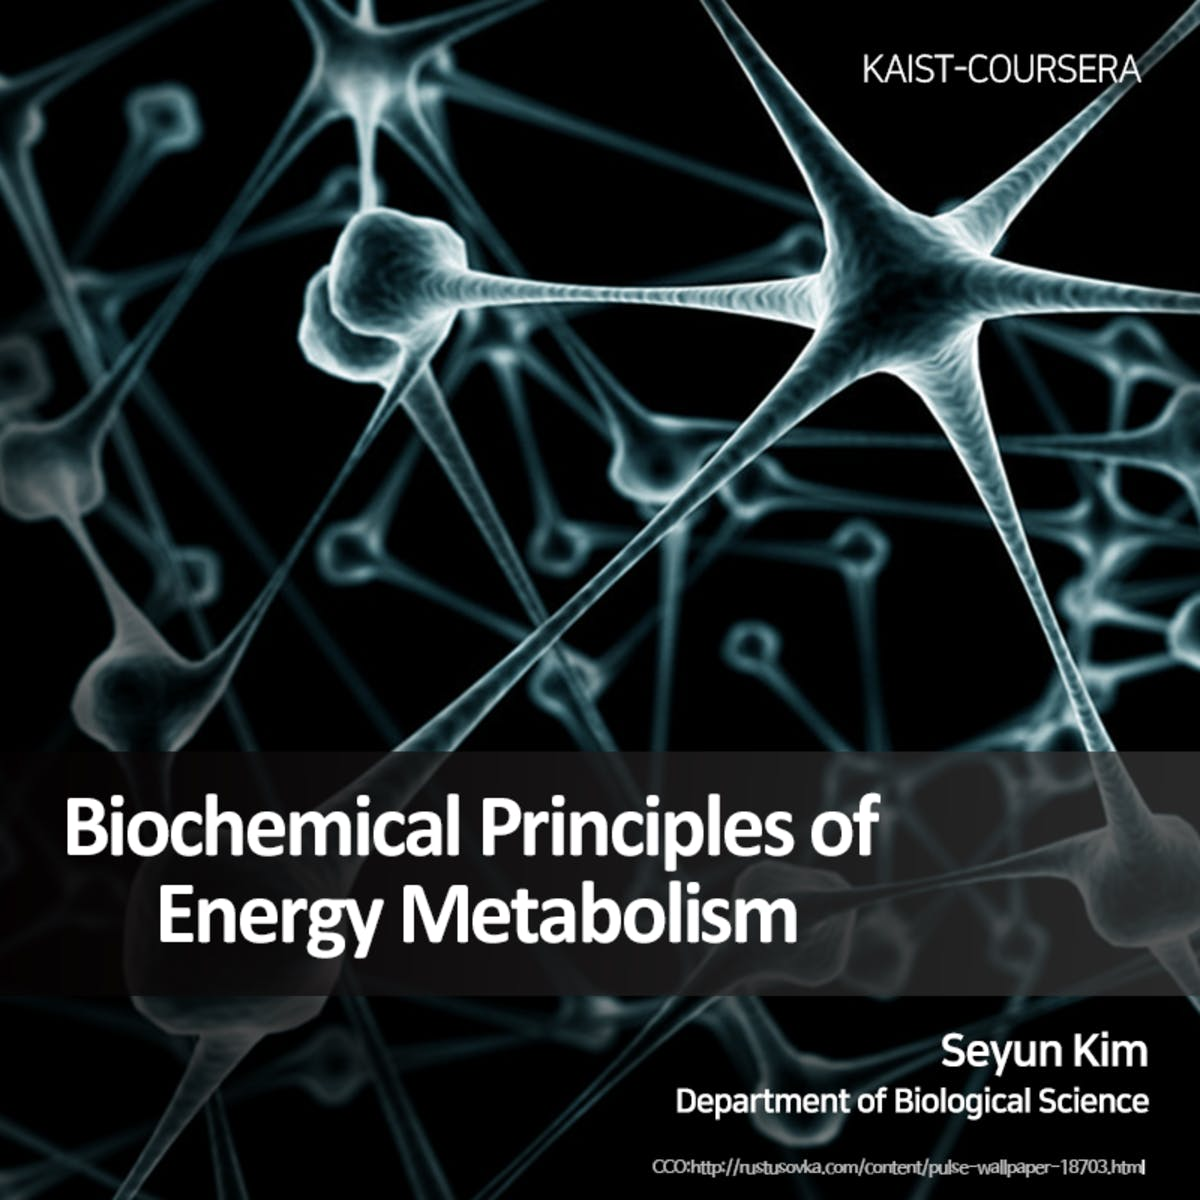 Biochemical Principles of Energy Metabolism